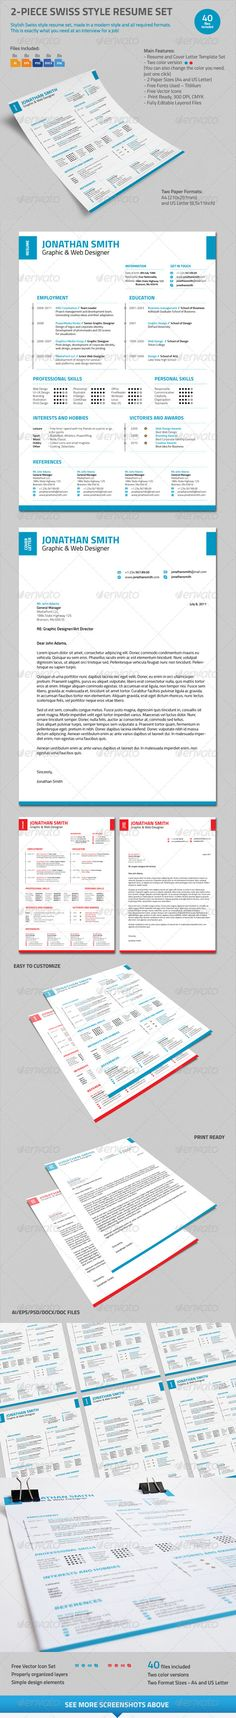 simple style cv resumé with cover letter fonts print templates